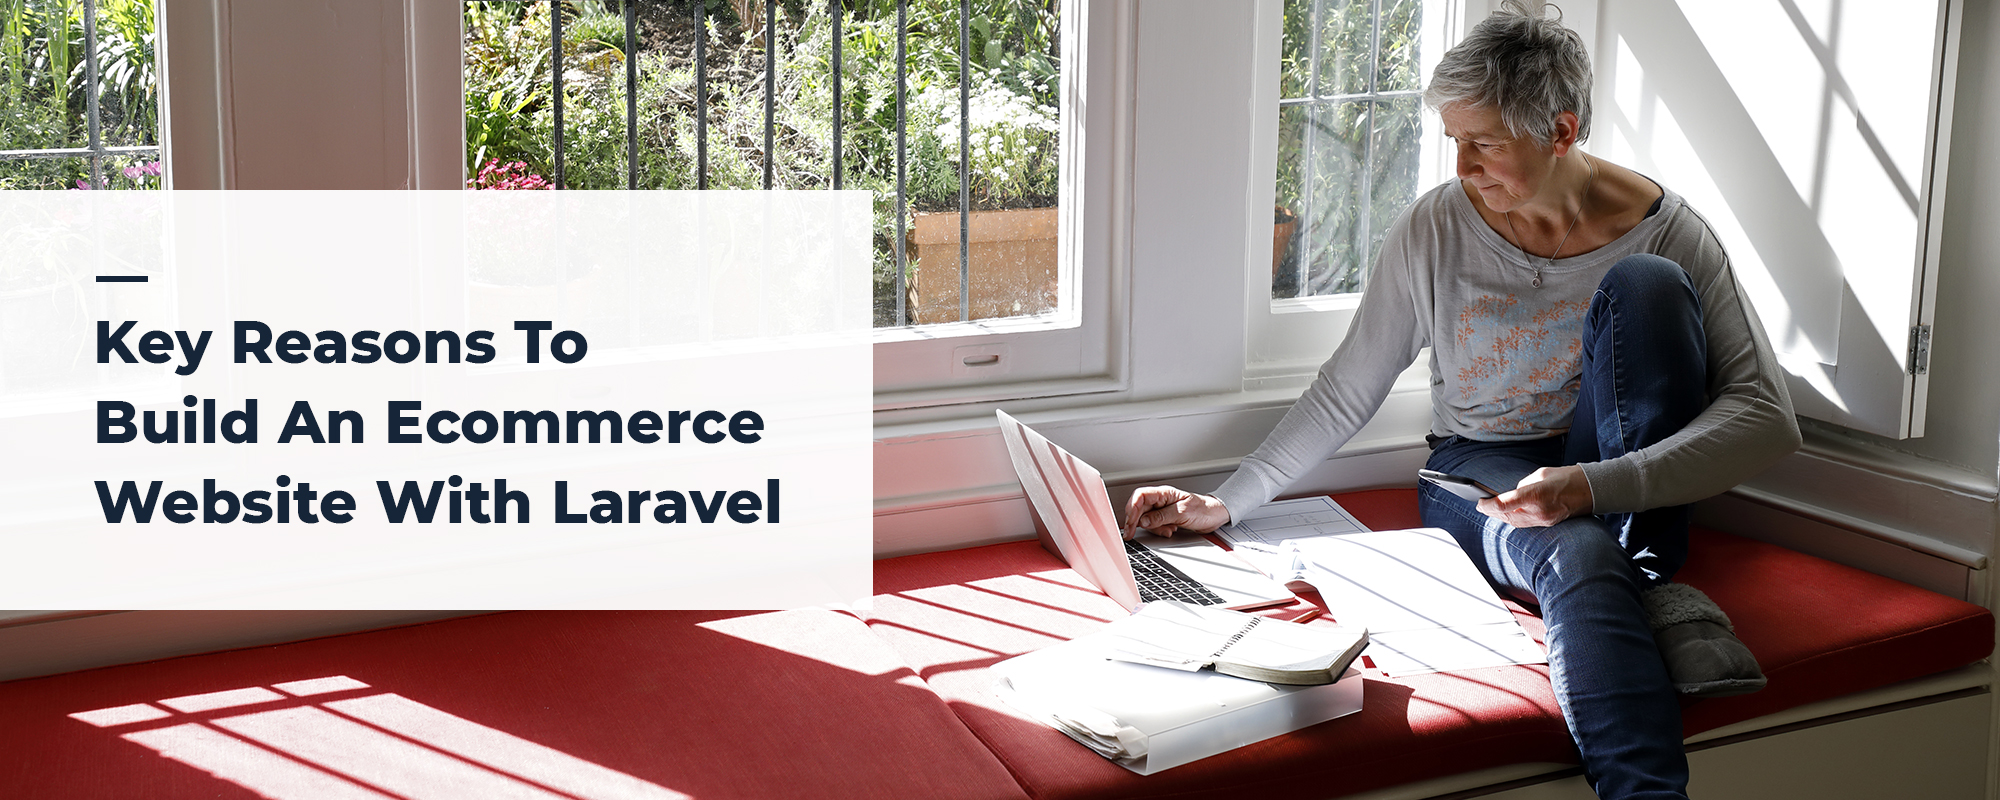 Key Reasons To Build an Ecommerce Website With Laravel